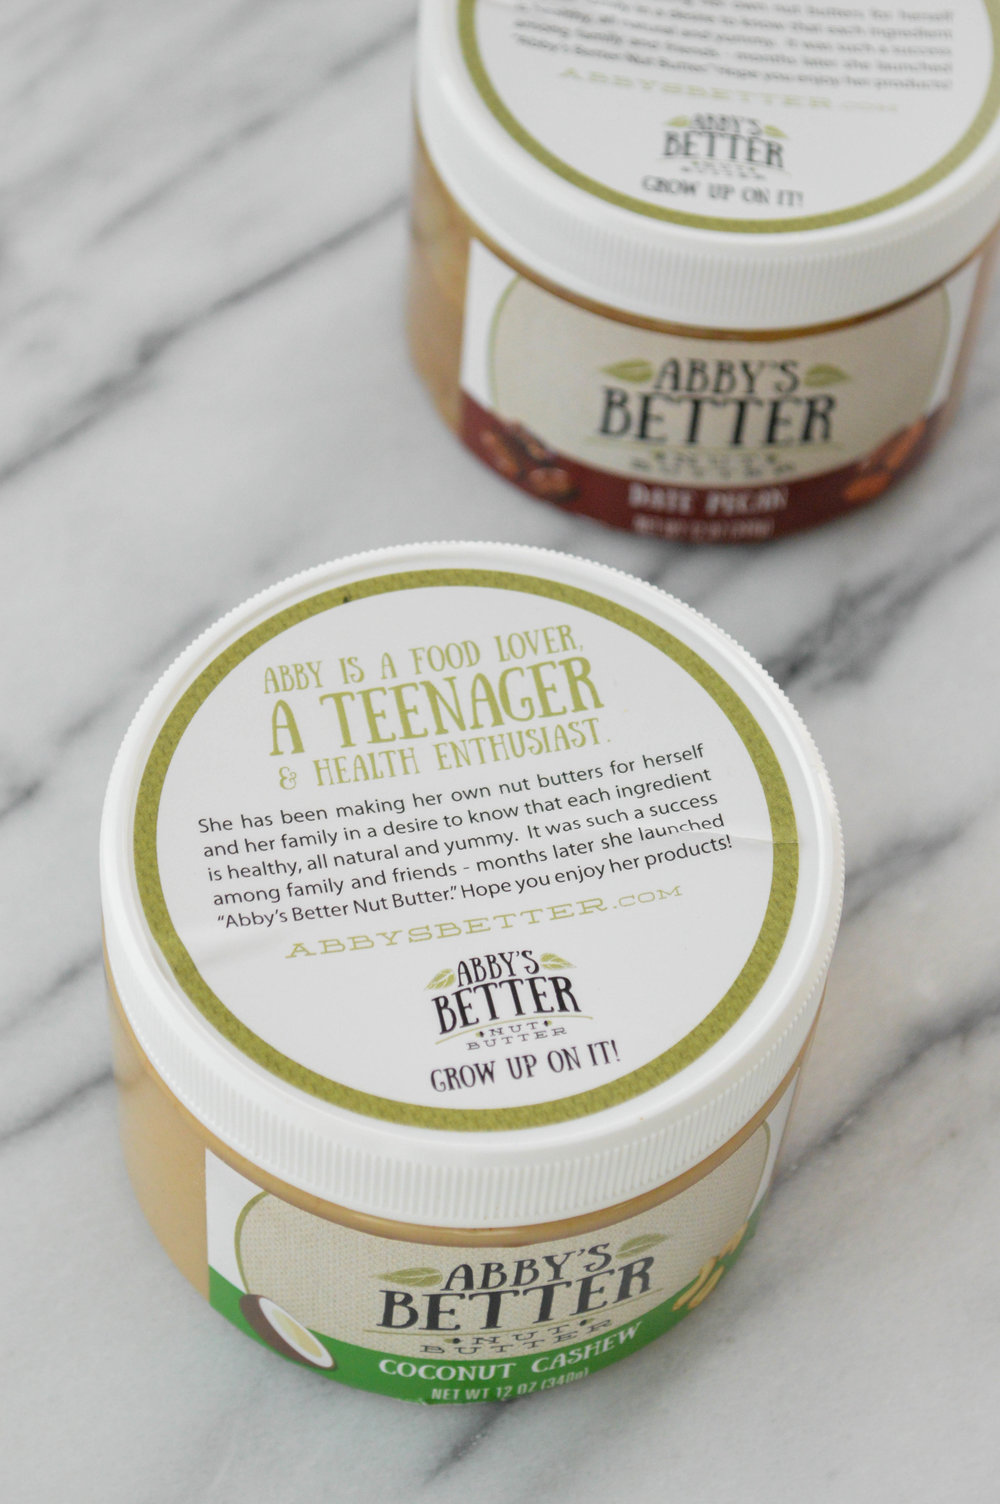 Lauren-Schwaiger-Healthy-Living-Blog-Abbys-Better-Nut-Butter.jpg